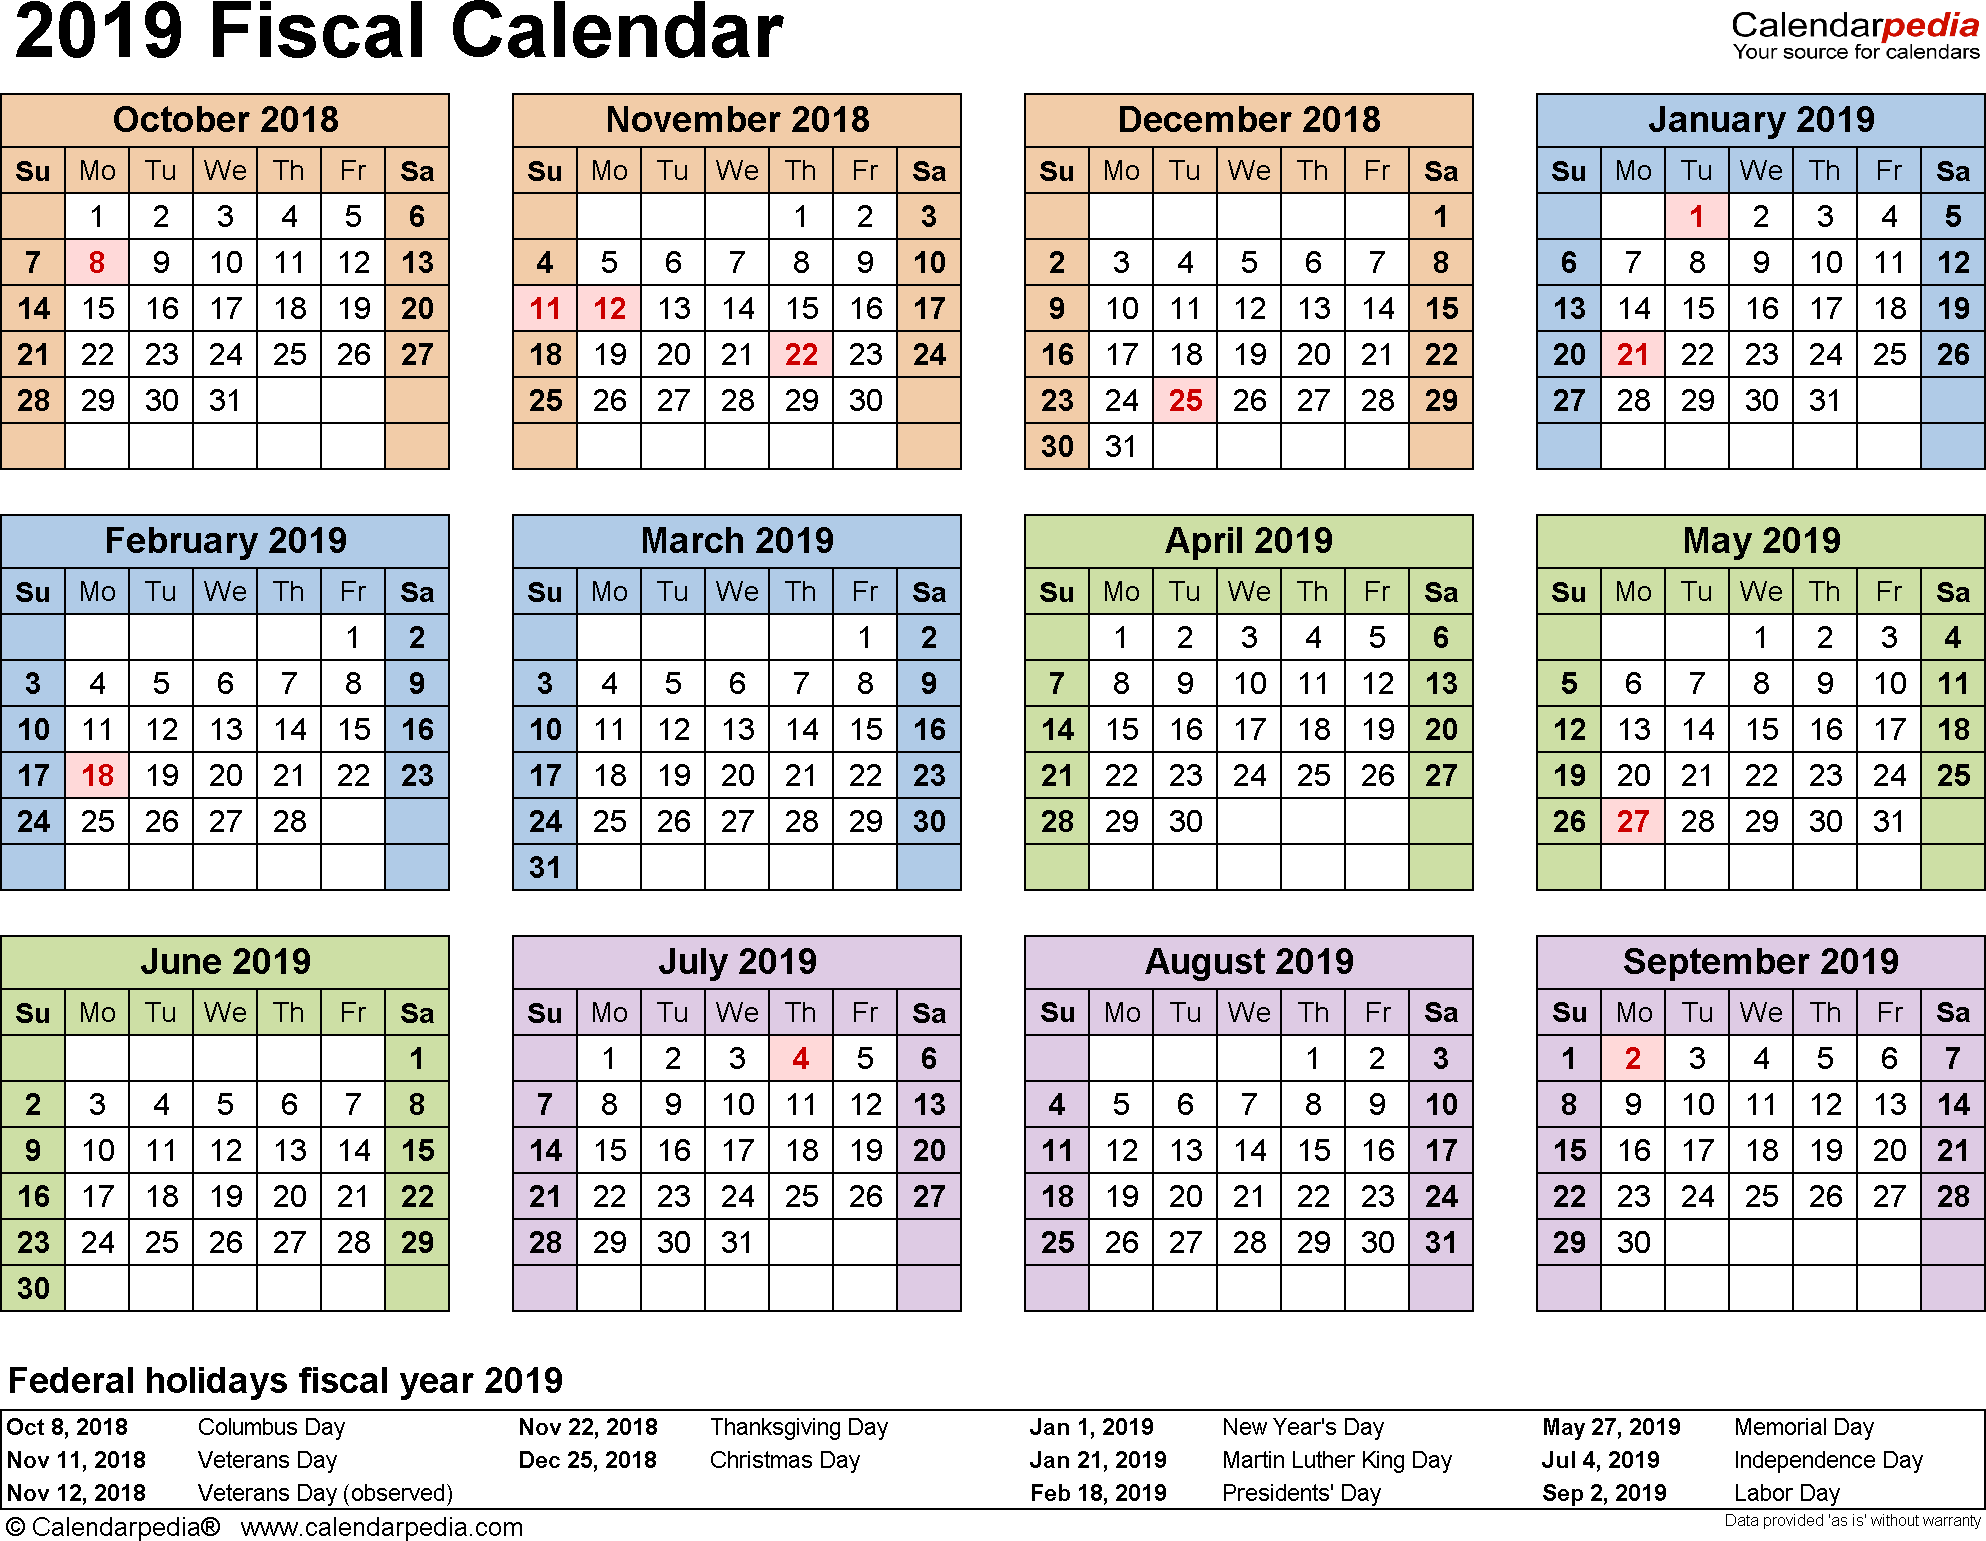 Template 4: Fiscal year calendar 2019 for Excel, landscape orientation, year at a glance, 1 page